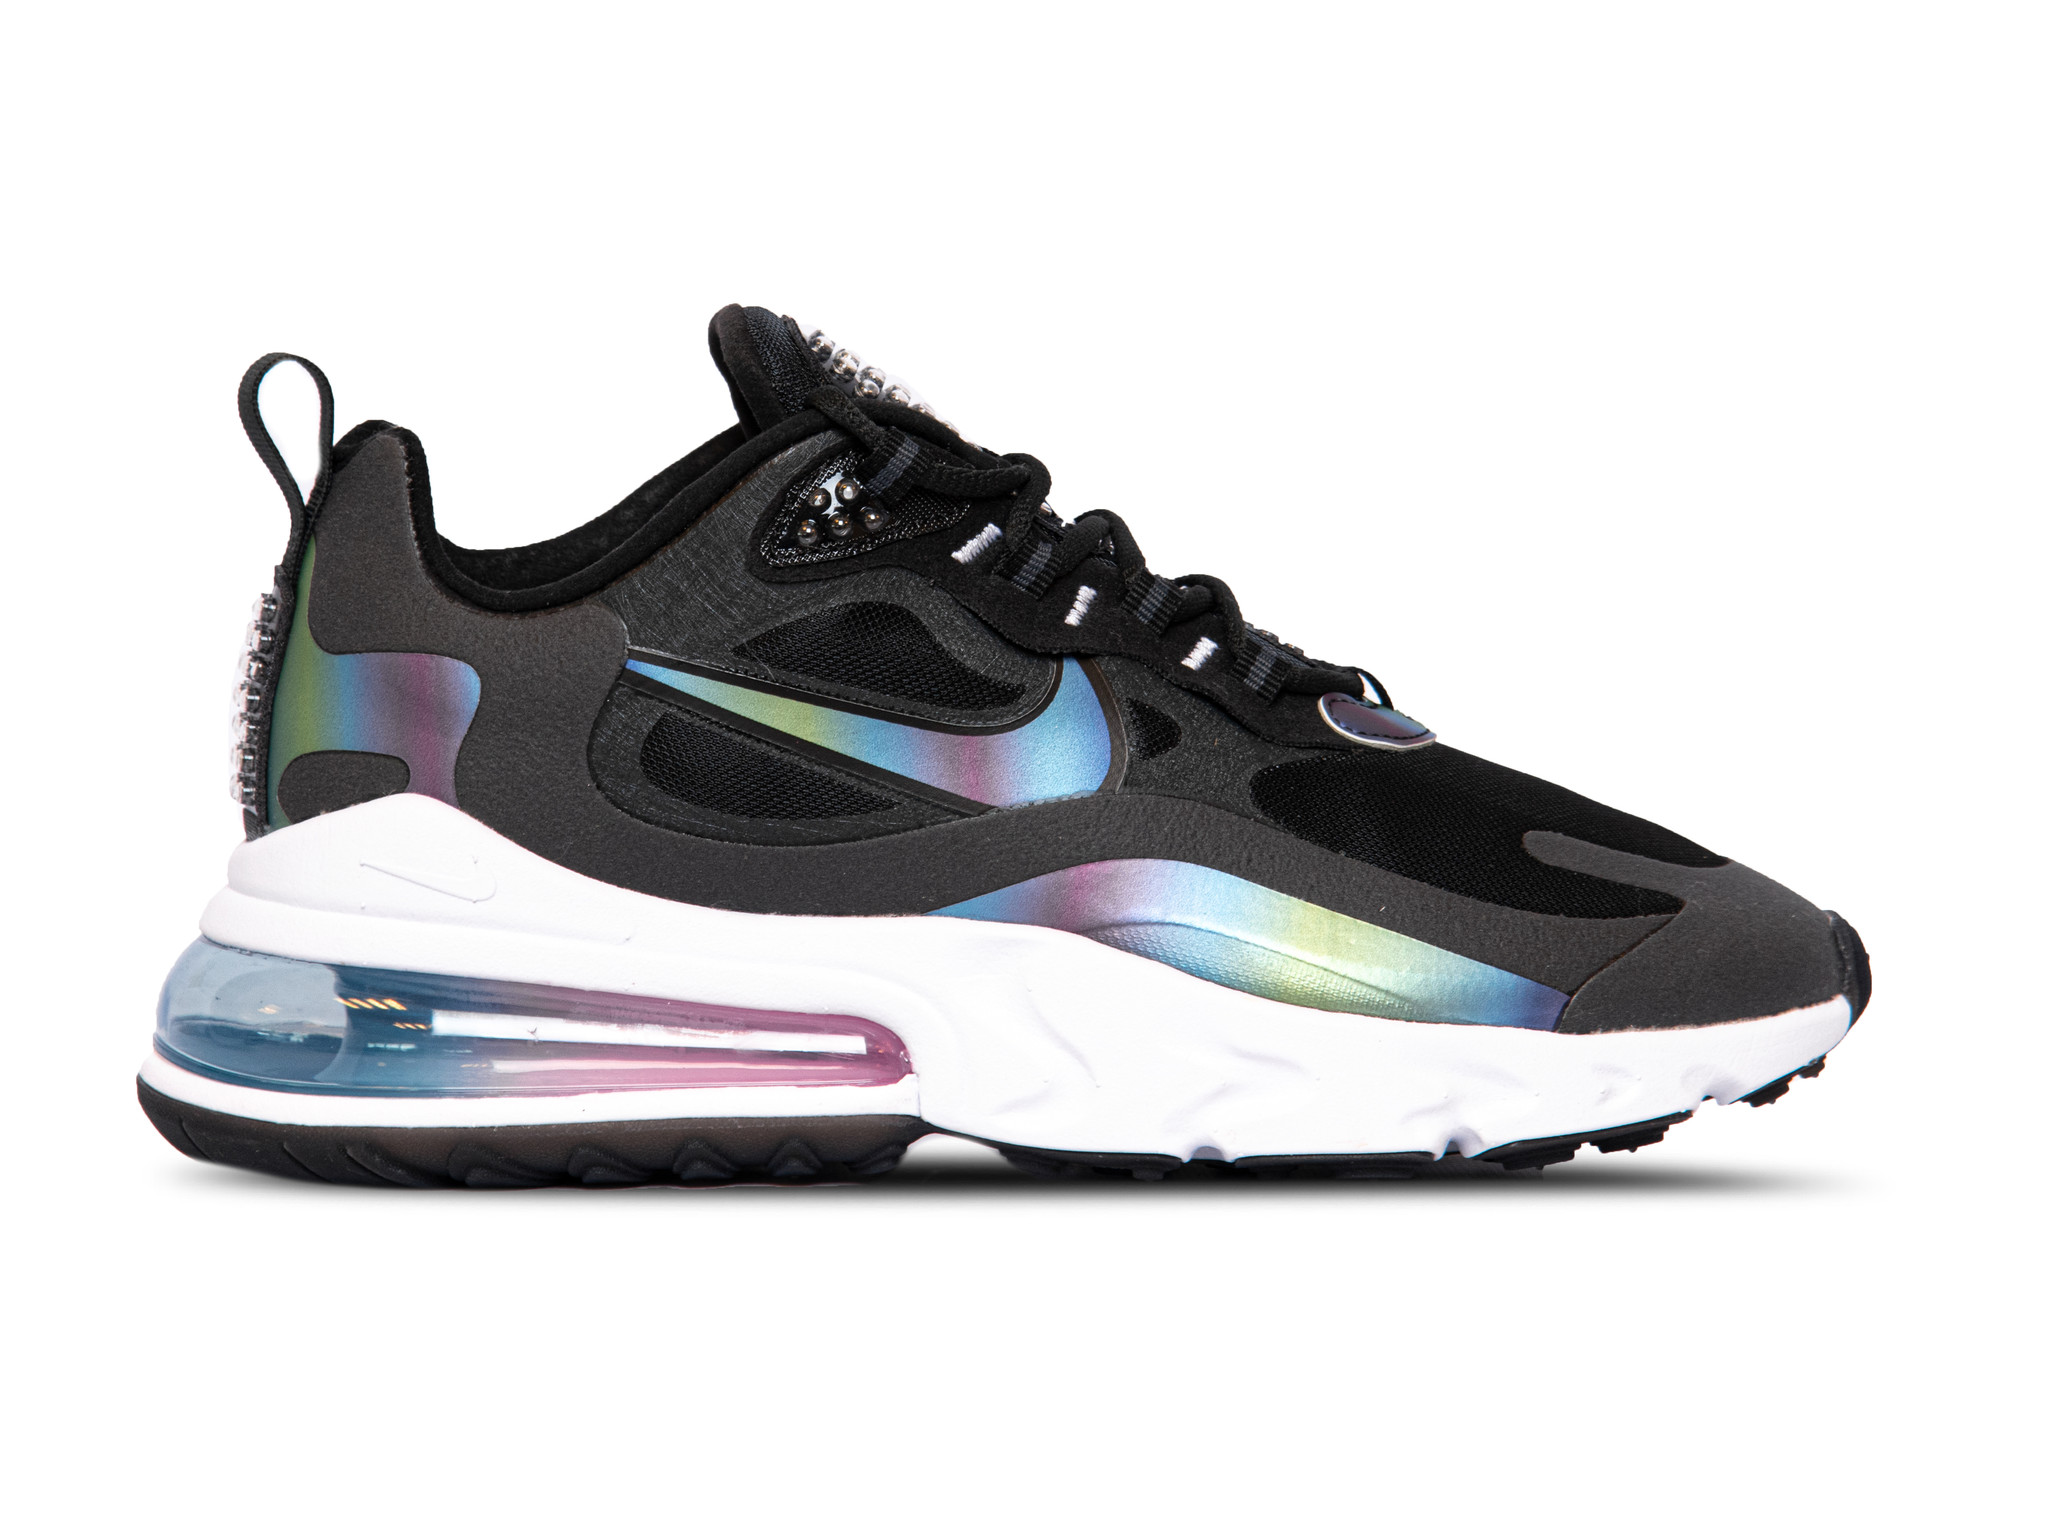 Air Max 270 React Fossil Hyper Blue Black CI3899 200 Bruut